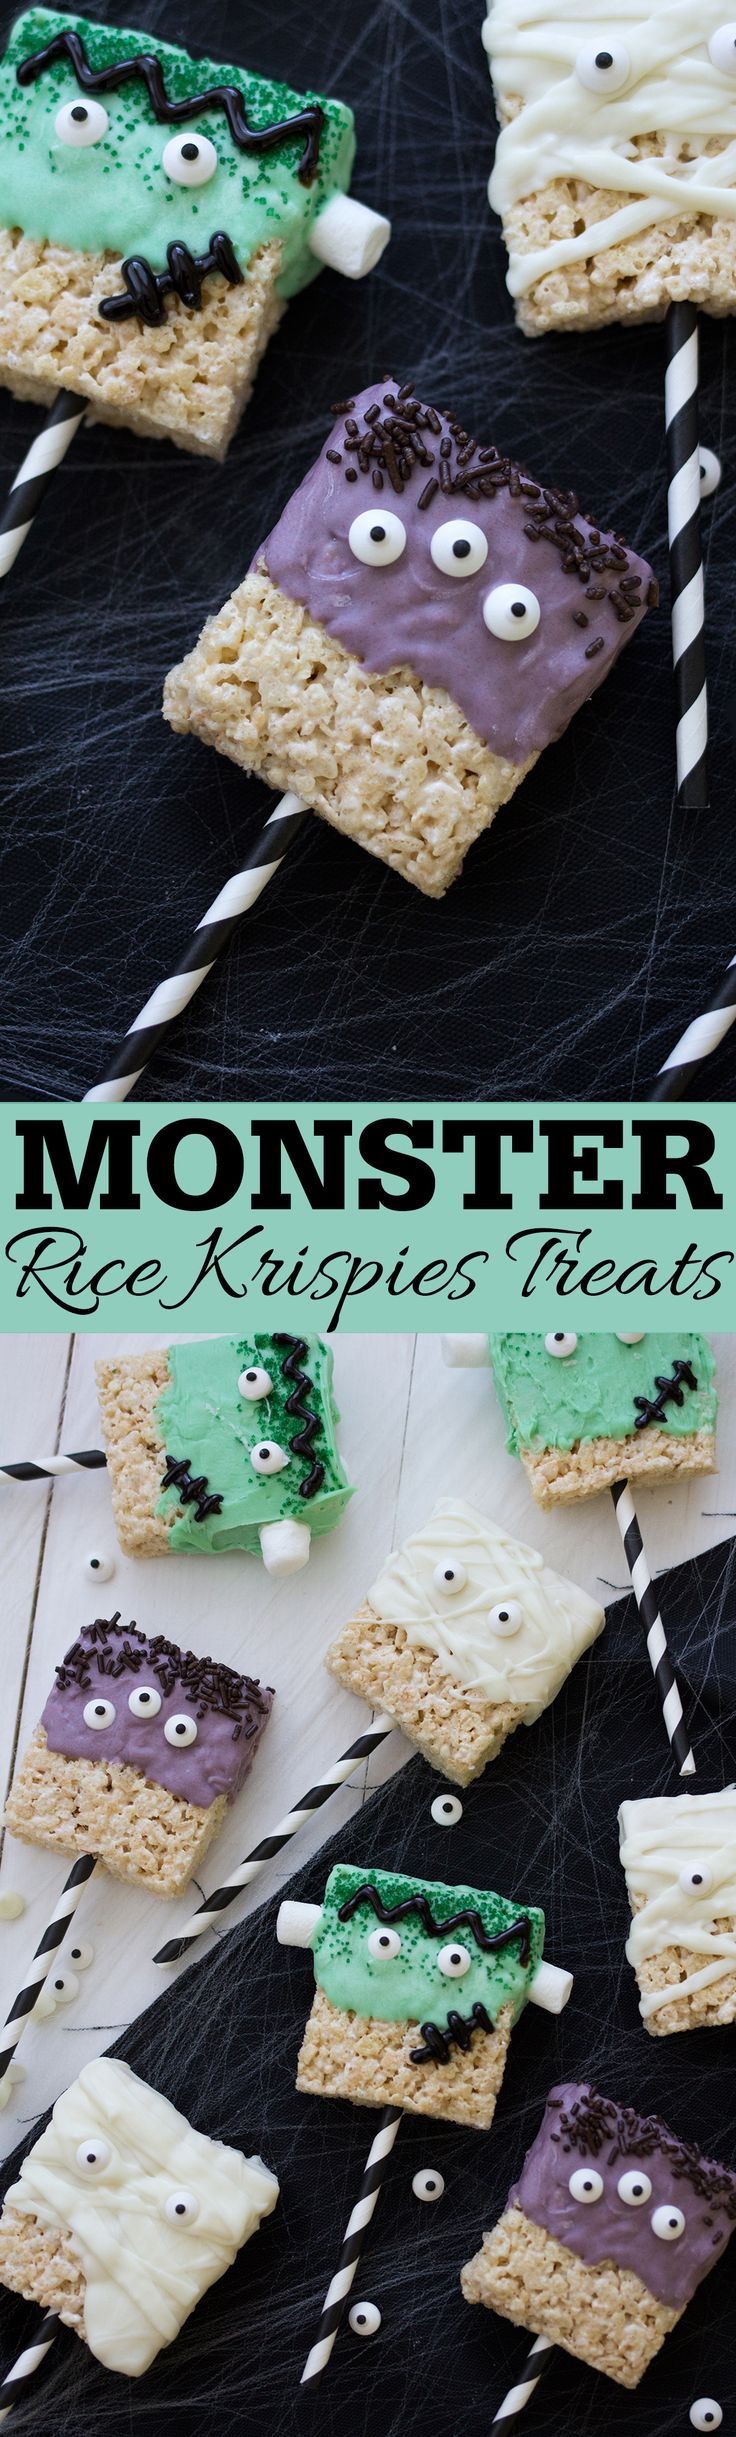 Turn rice krispies treats into adorable monsters for Halloween with just a few ingredients. Step by step decorating instructions for Frankenstein, Mummy and Three Eyed Monsters.